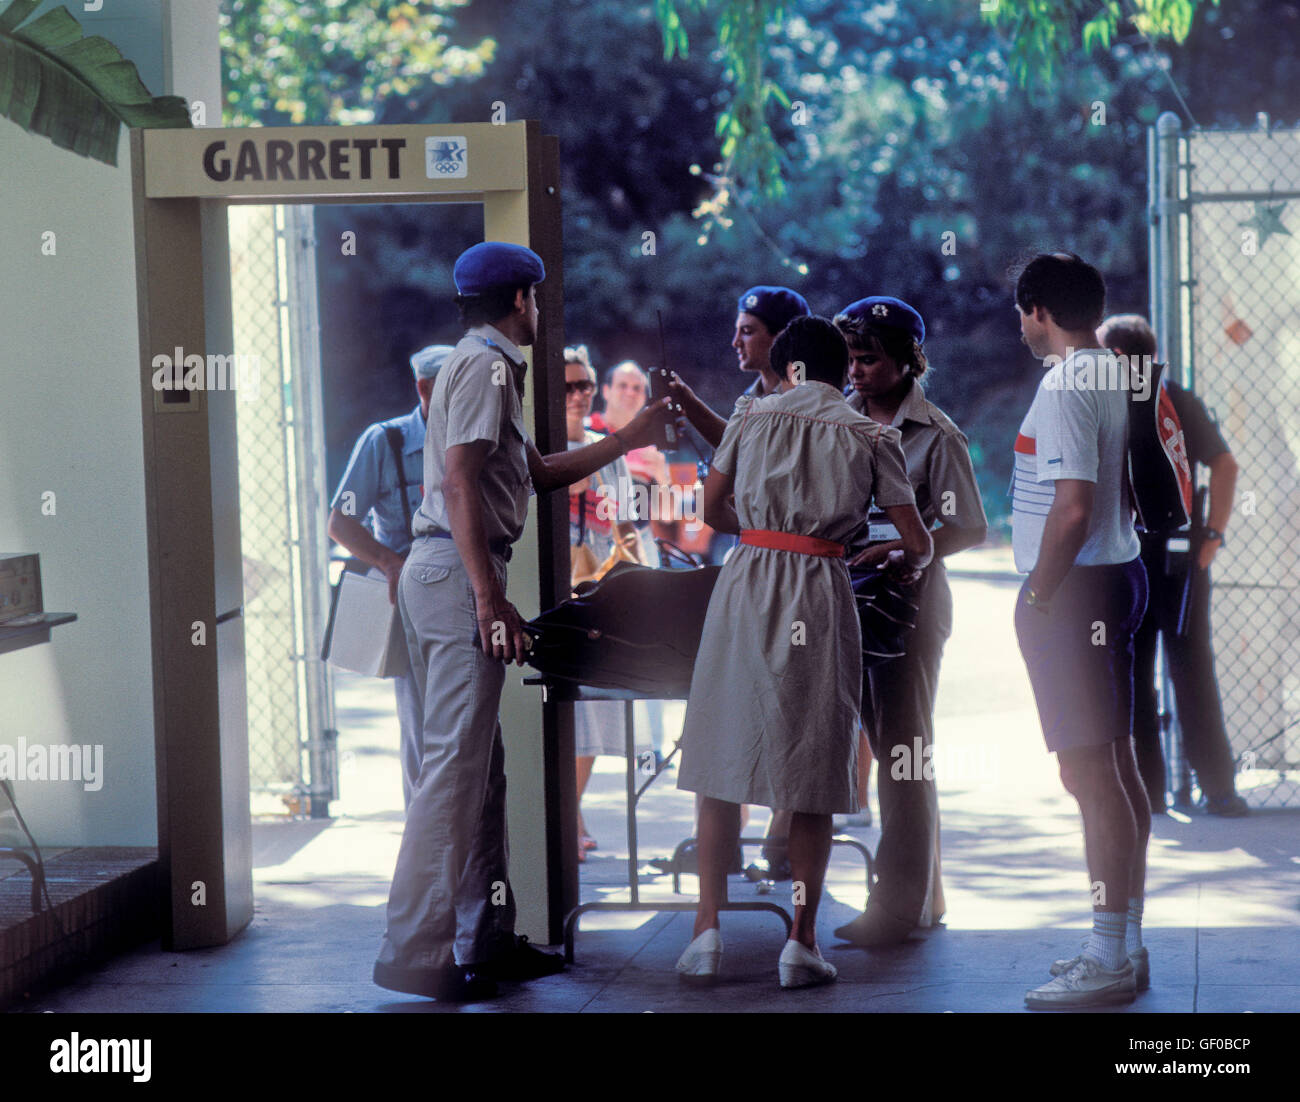 Security gate at UCLA Olympic (athletes') Village at 1984 Olympic Games in Los Angeles. - Stock Image